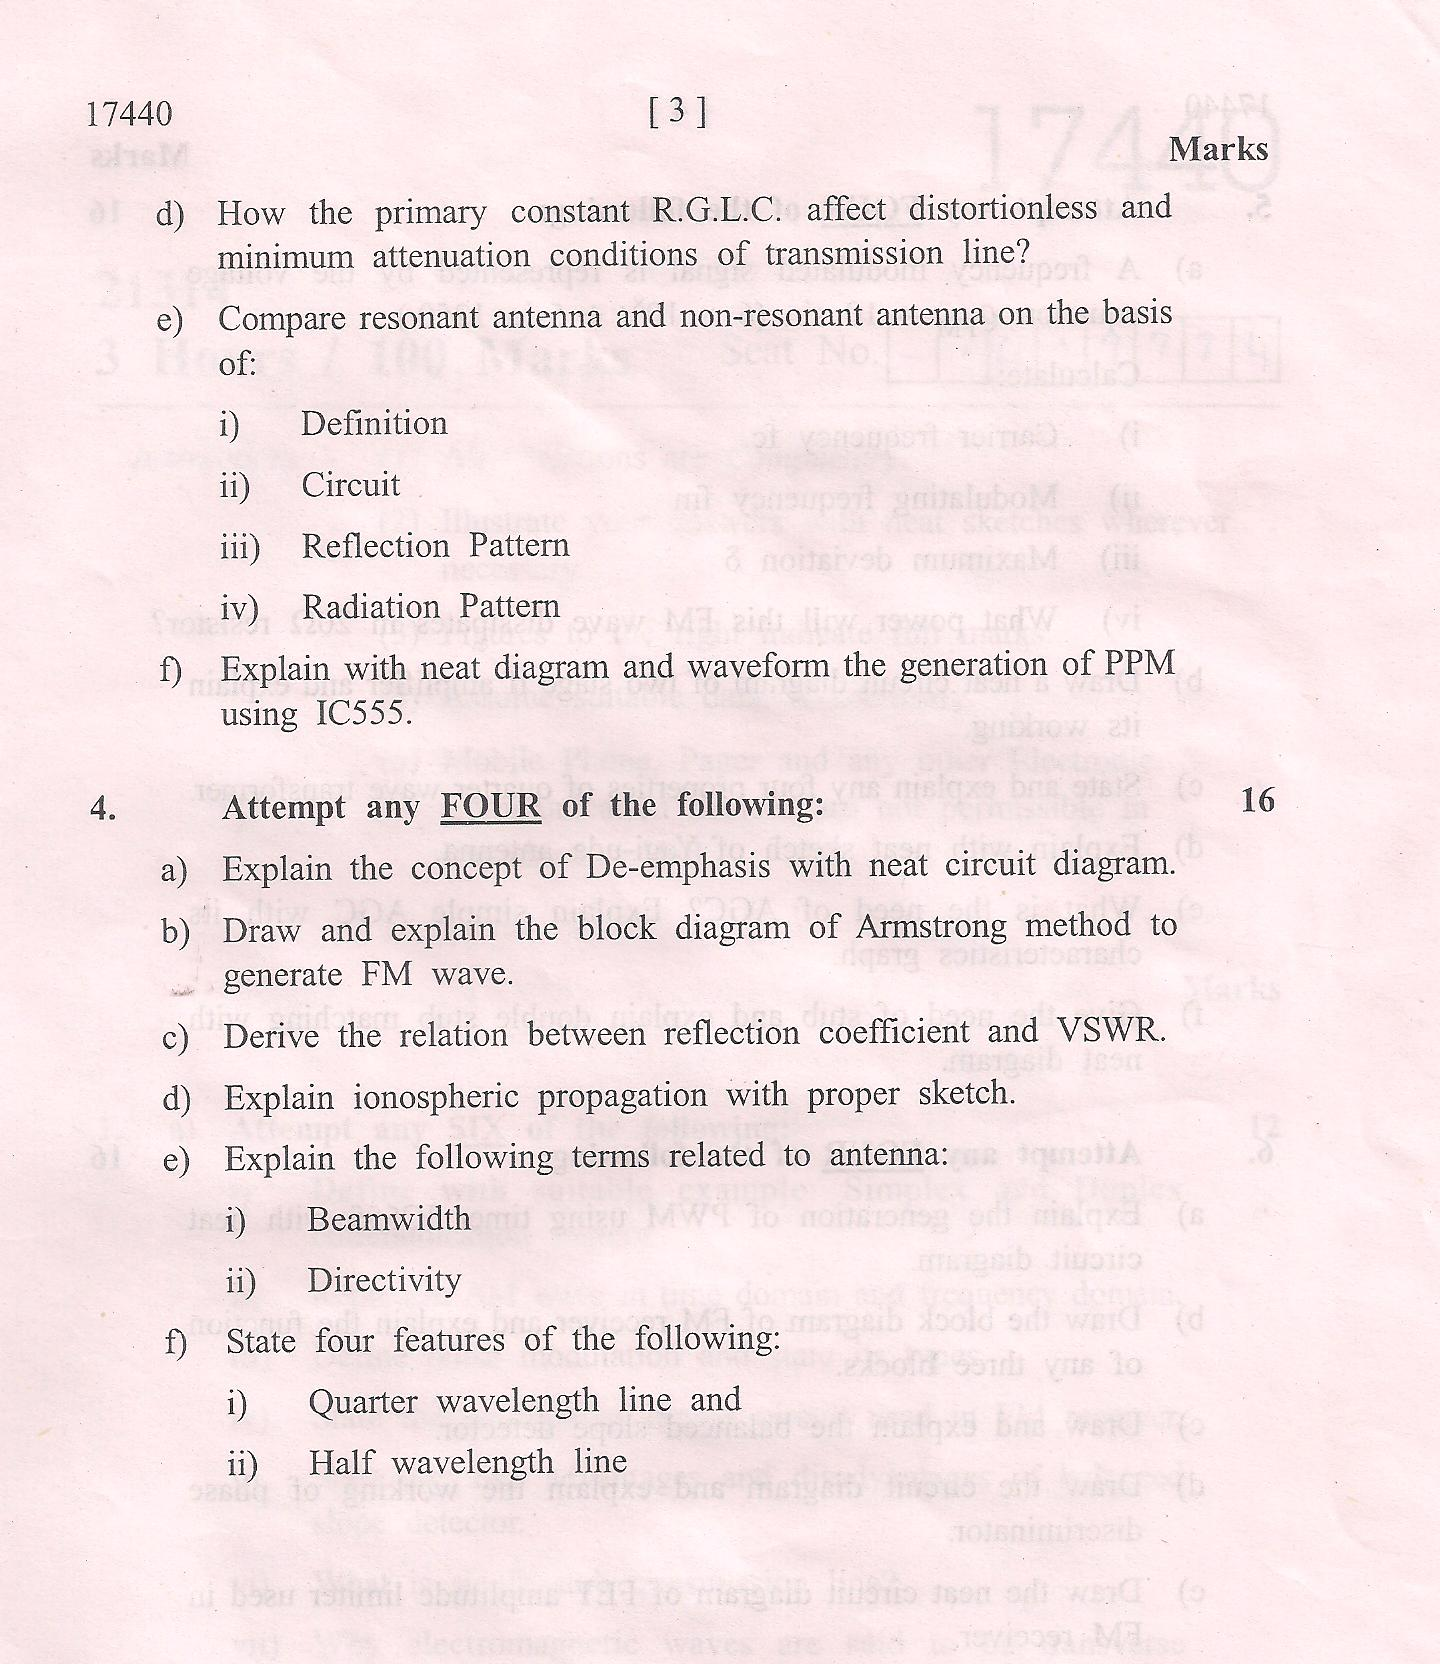 general maharashtra state board of technical education msbte  2014 general diploma electronics tele communication maharashtra state board of technical education msbte original question paper of diploma in